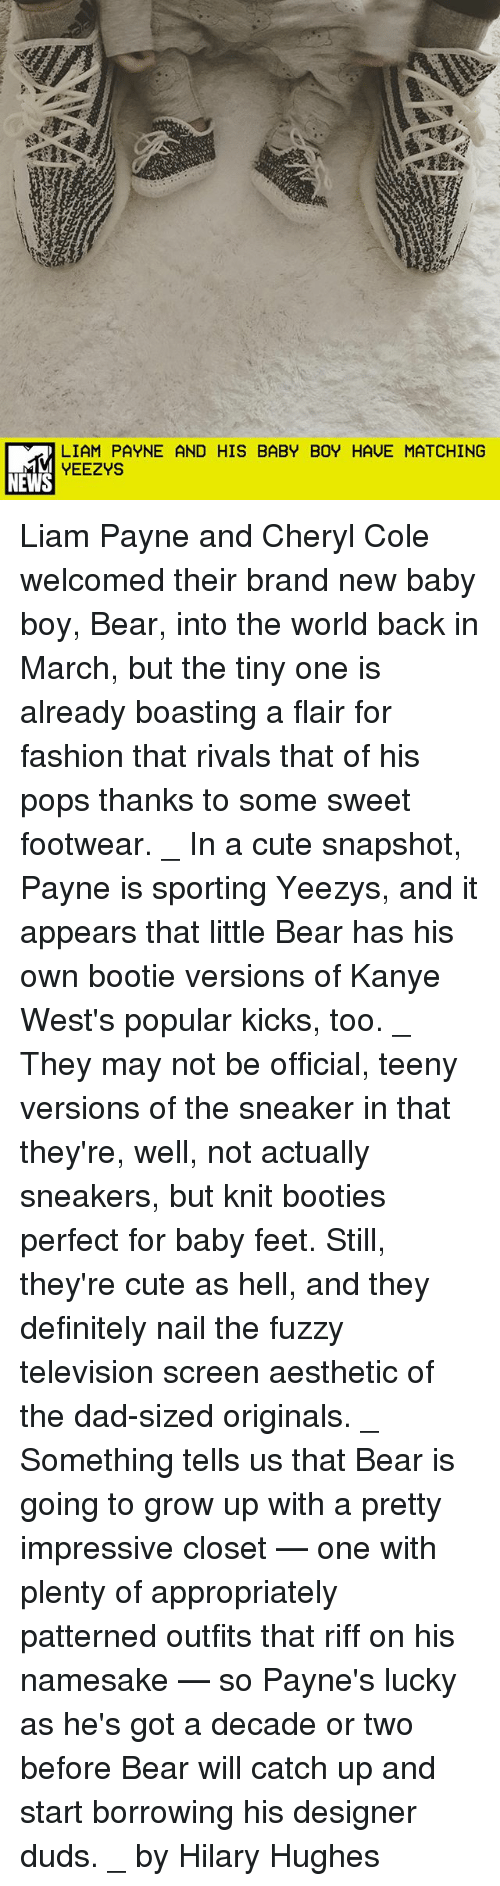 little bear: LIAM PAYNE AND HIS BABY BOY HAVE MATCHING  YEEZYS  NEWS Liam Payne and Cheryl Cole welcomed their brand new baby boy, Bear, into the world back in March, but the tiny one is already boasting a flair for fashion that rivals that of his pops thanks to some sweet footwear. _ In a cute snapshot, Payne is sporting Yeezys, and it appears that little Bear has his own bootie versions of Kanye West's popular kicks, too. _ They may not be official, teeny versions of the sneaker in that they're, well, not actually sneakers, but knit booties perfect for baby feet. Still, they're cute as hell, and they definitely nail the fuzzy television screen aesthetic of the dad-sized originals. _ Something tells us that Bear is going to grow up with a pretty impressive closet — one with plenty of appropriately patterned outfits that riff on his namesake — so Payne's lucky as he's got a decade or two before Bear will catch up and start borrowing his designer duds. _ by Hilary Hughes